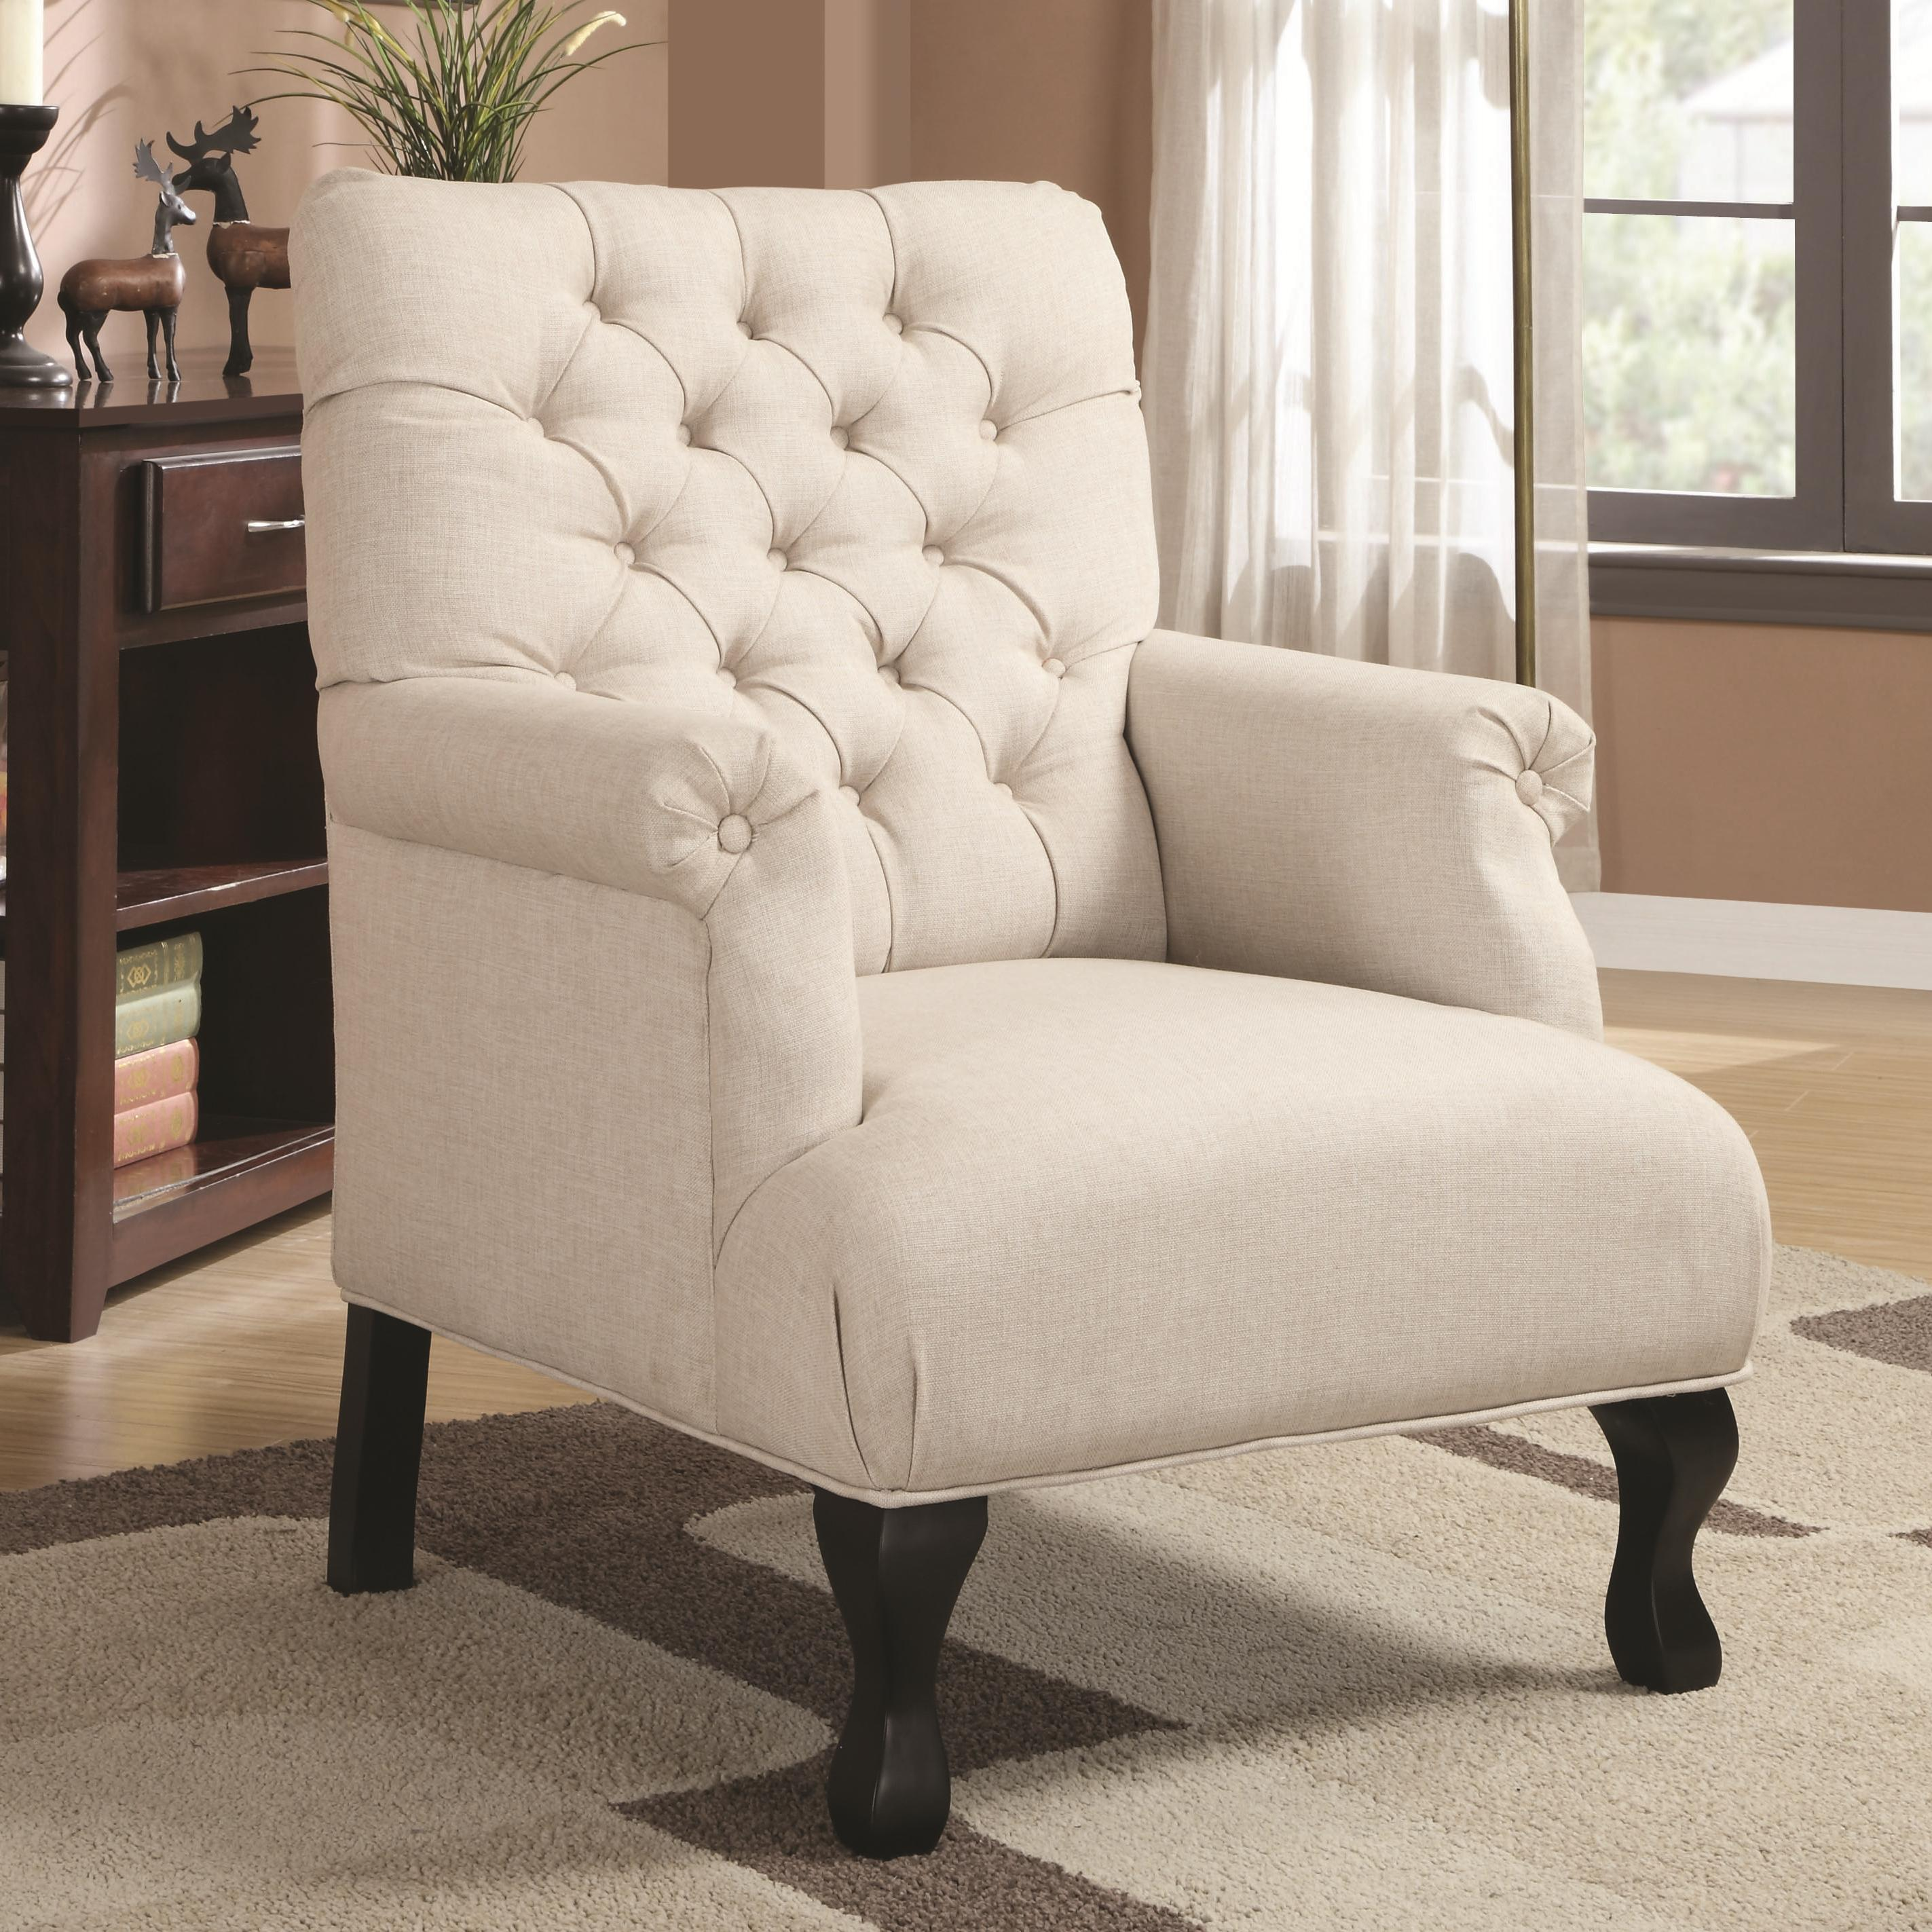 Coaster Accent Seating Accent Chair - Item Number: 902177